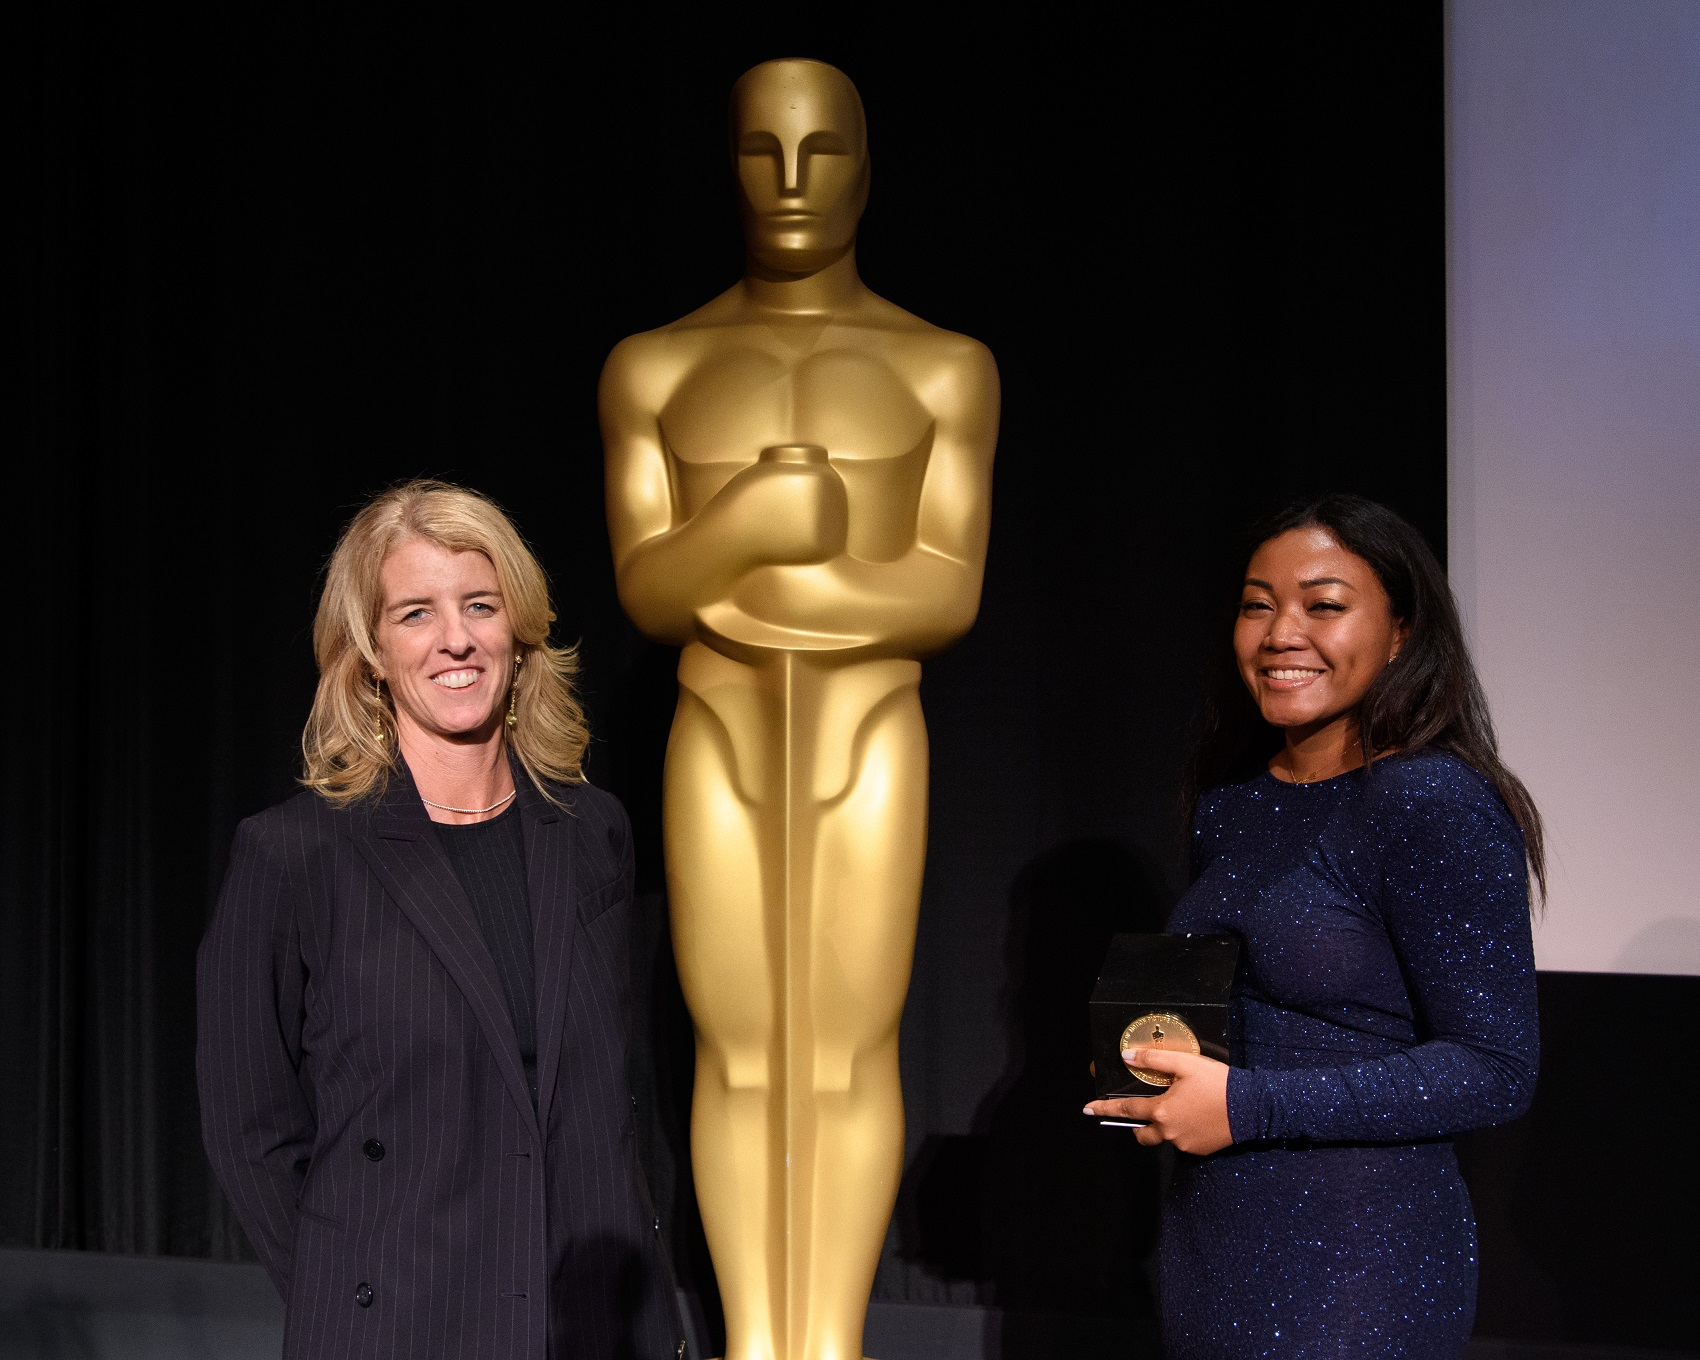 Princess Garrett, director of Sankofa, with the Student Academy Award gold medal.